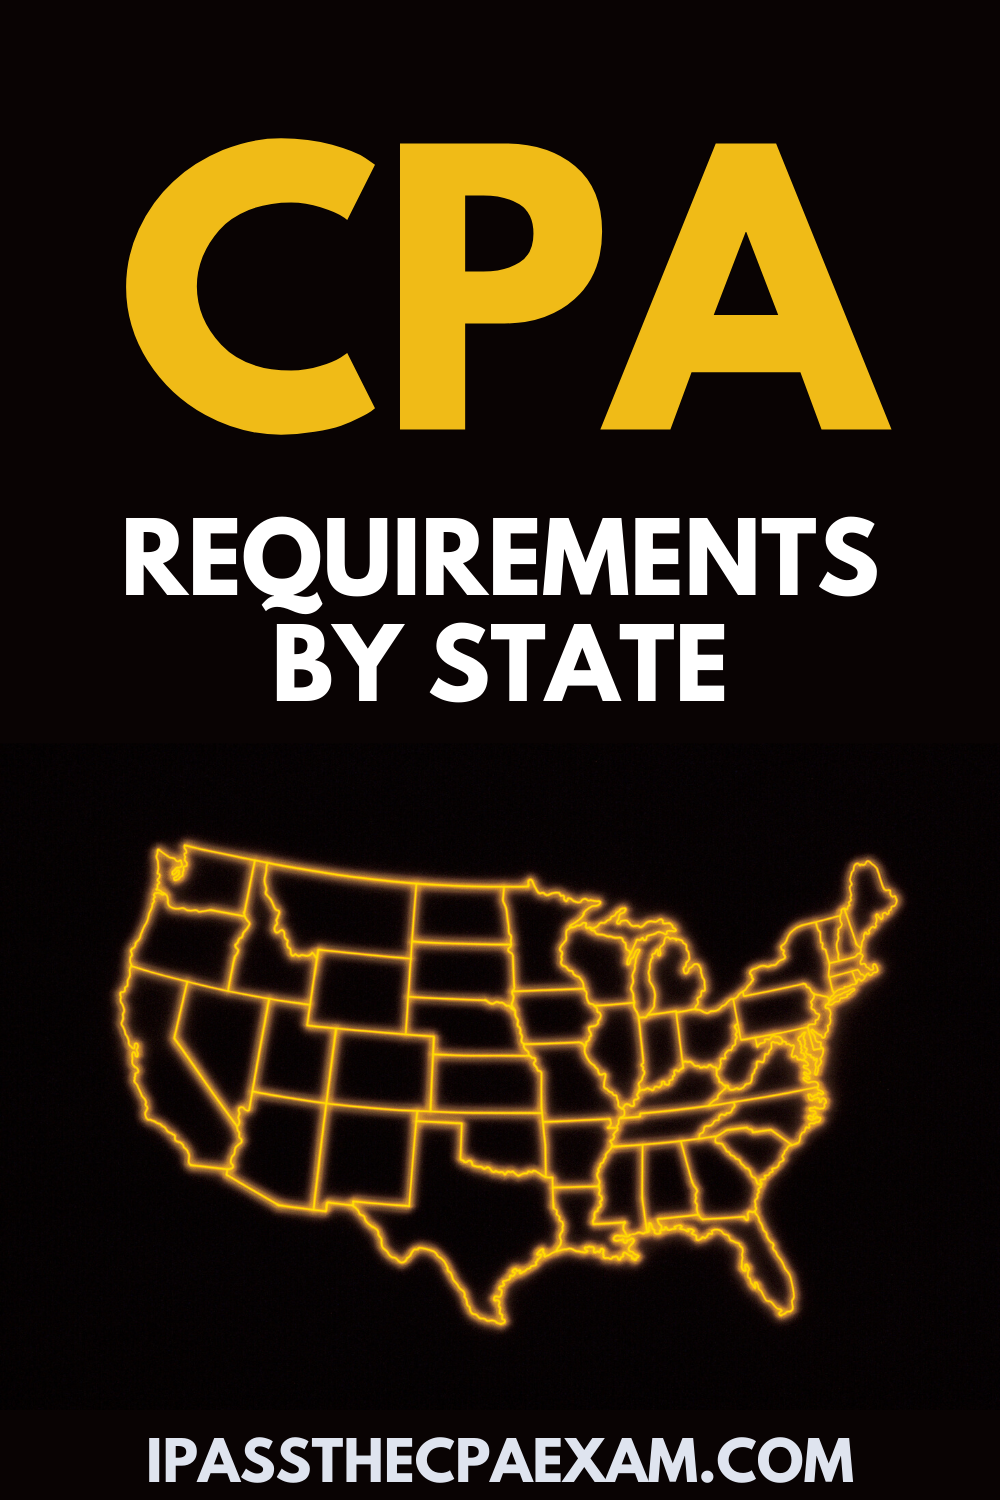 CPA Exam Requirements in 2020 | Cpa exam motivation, Cpa ...